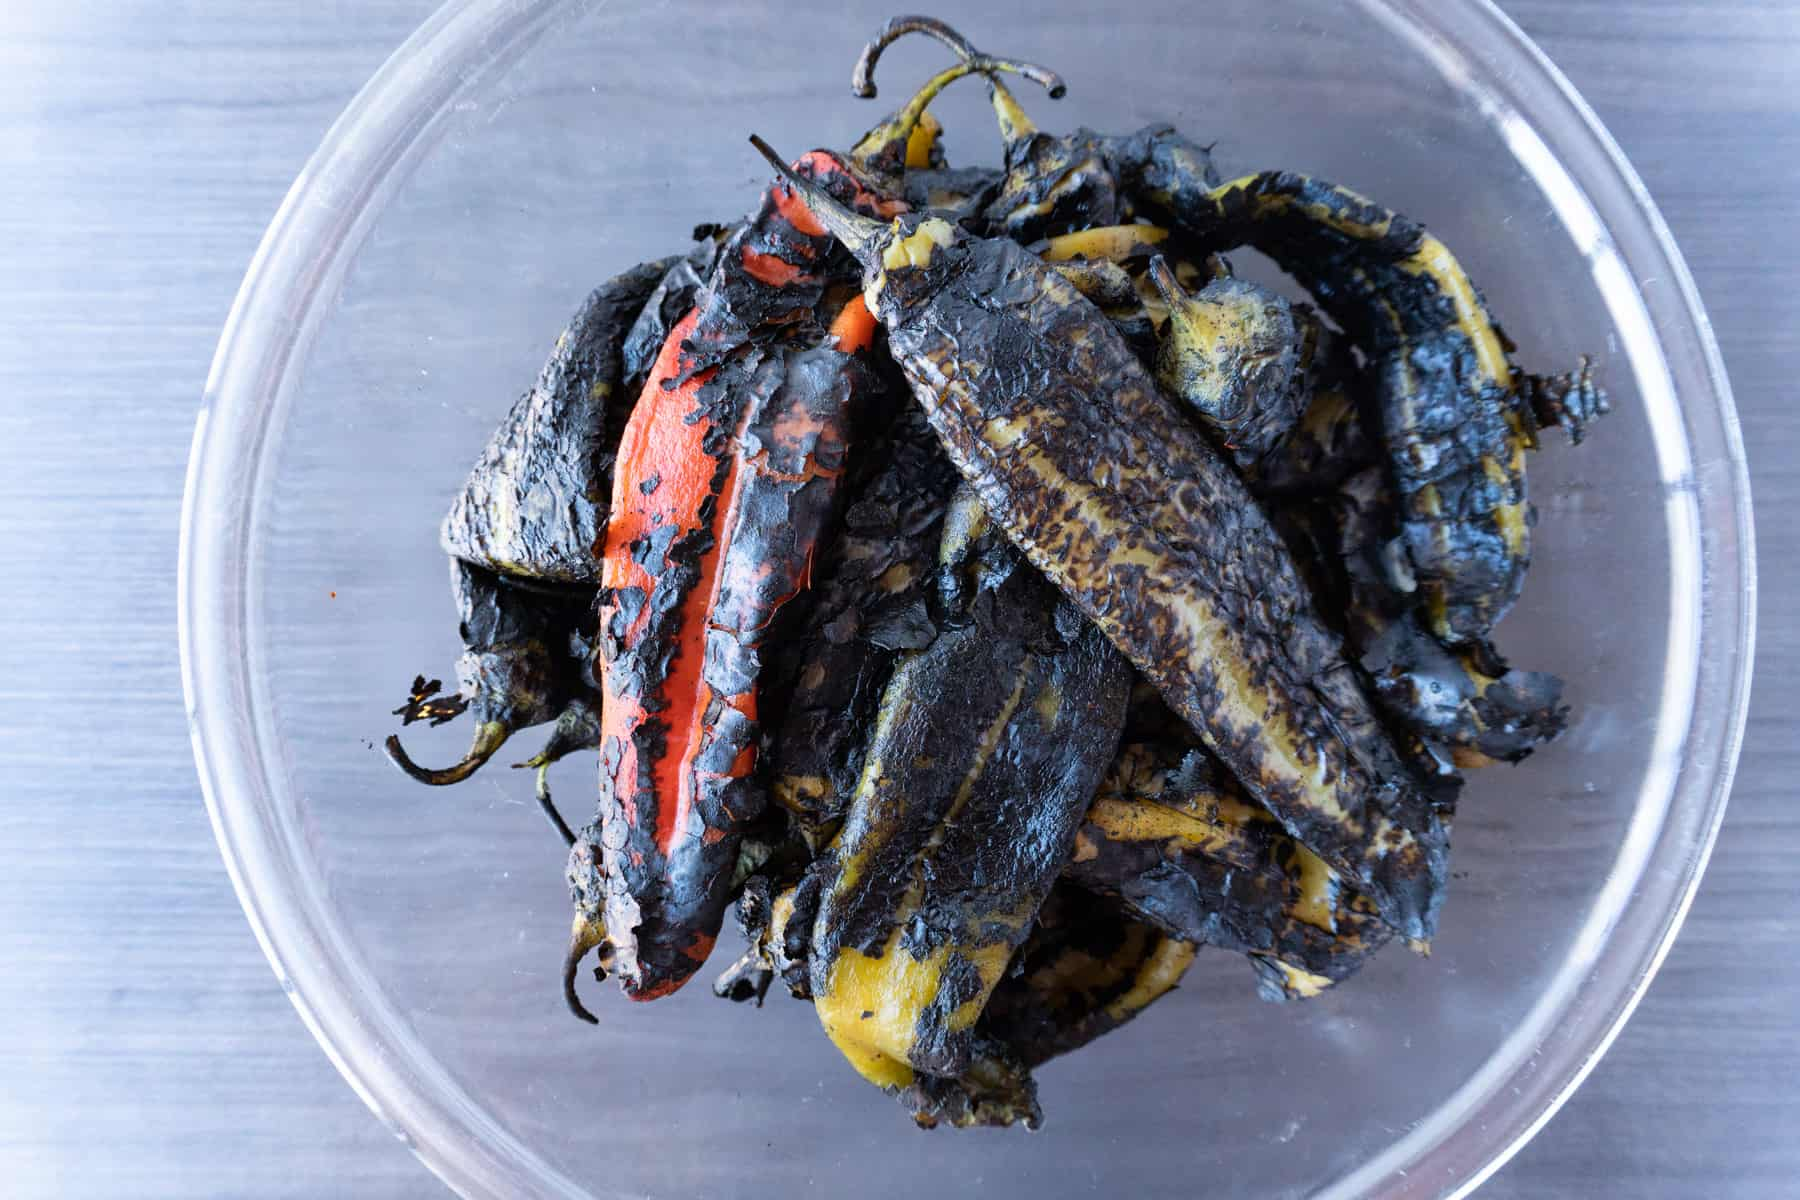 roasted green chile in in bowl with blackened skin